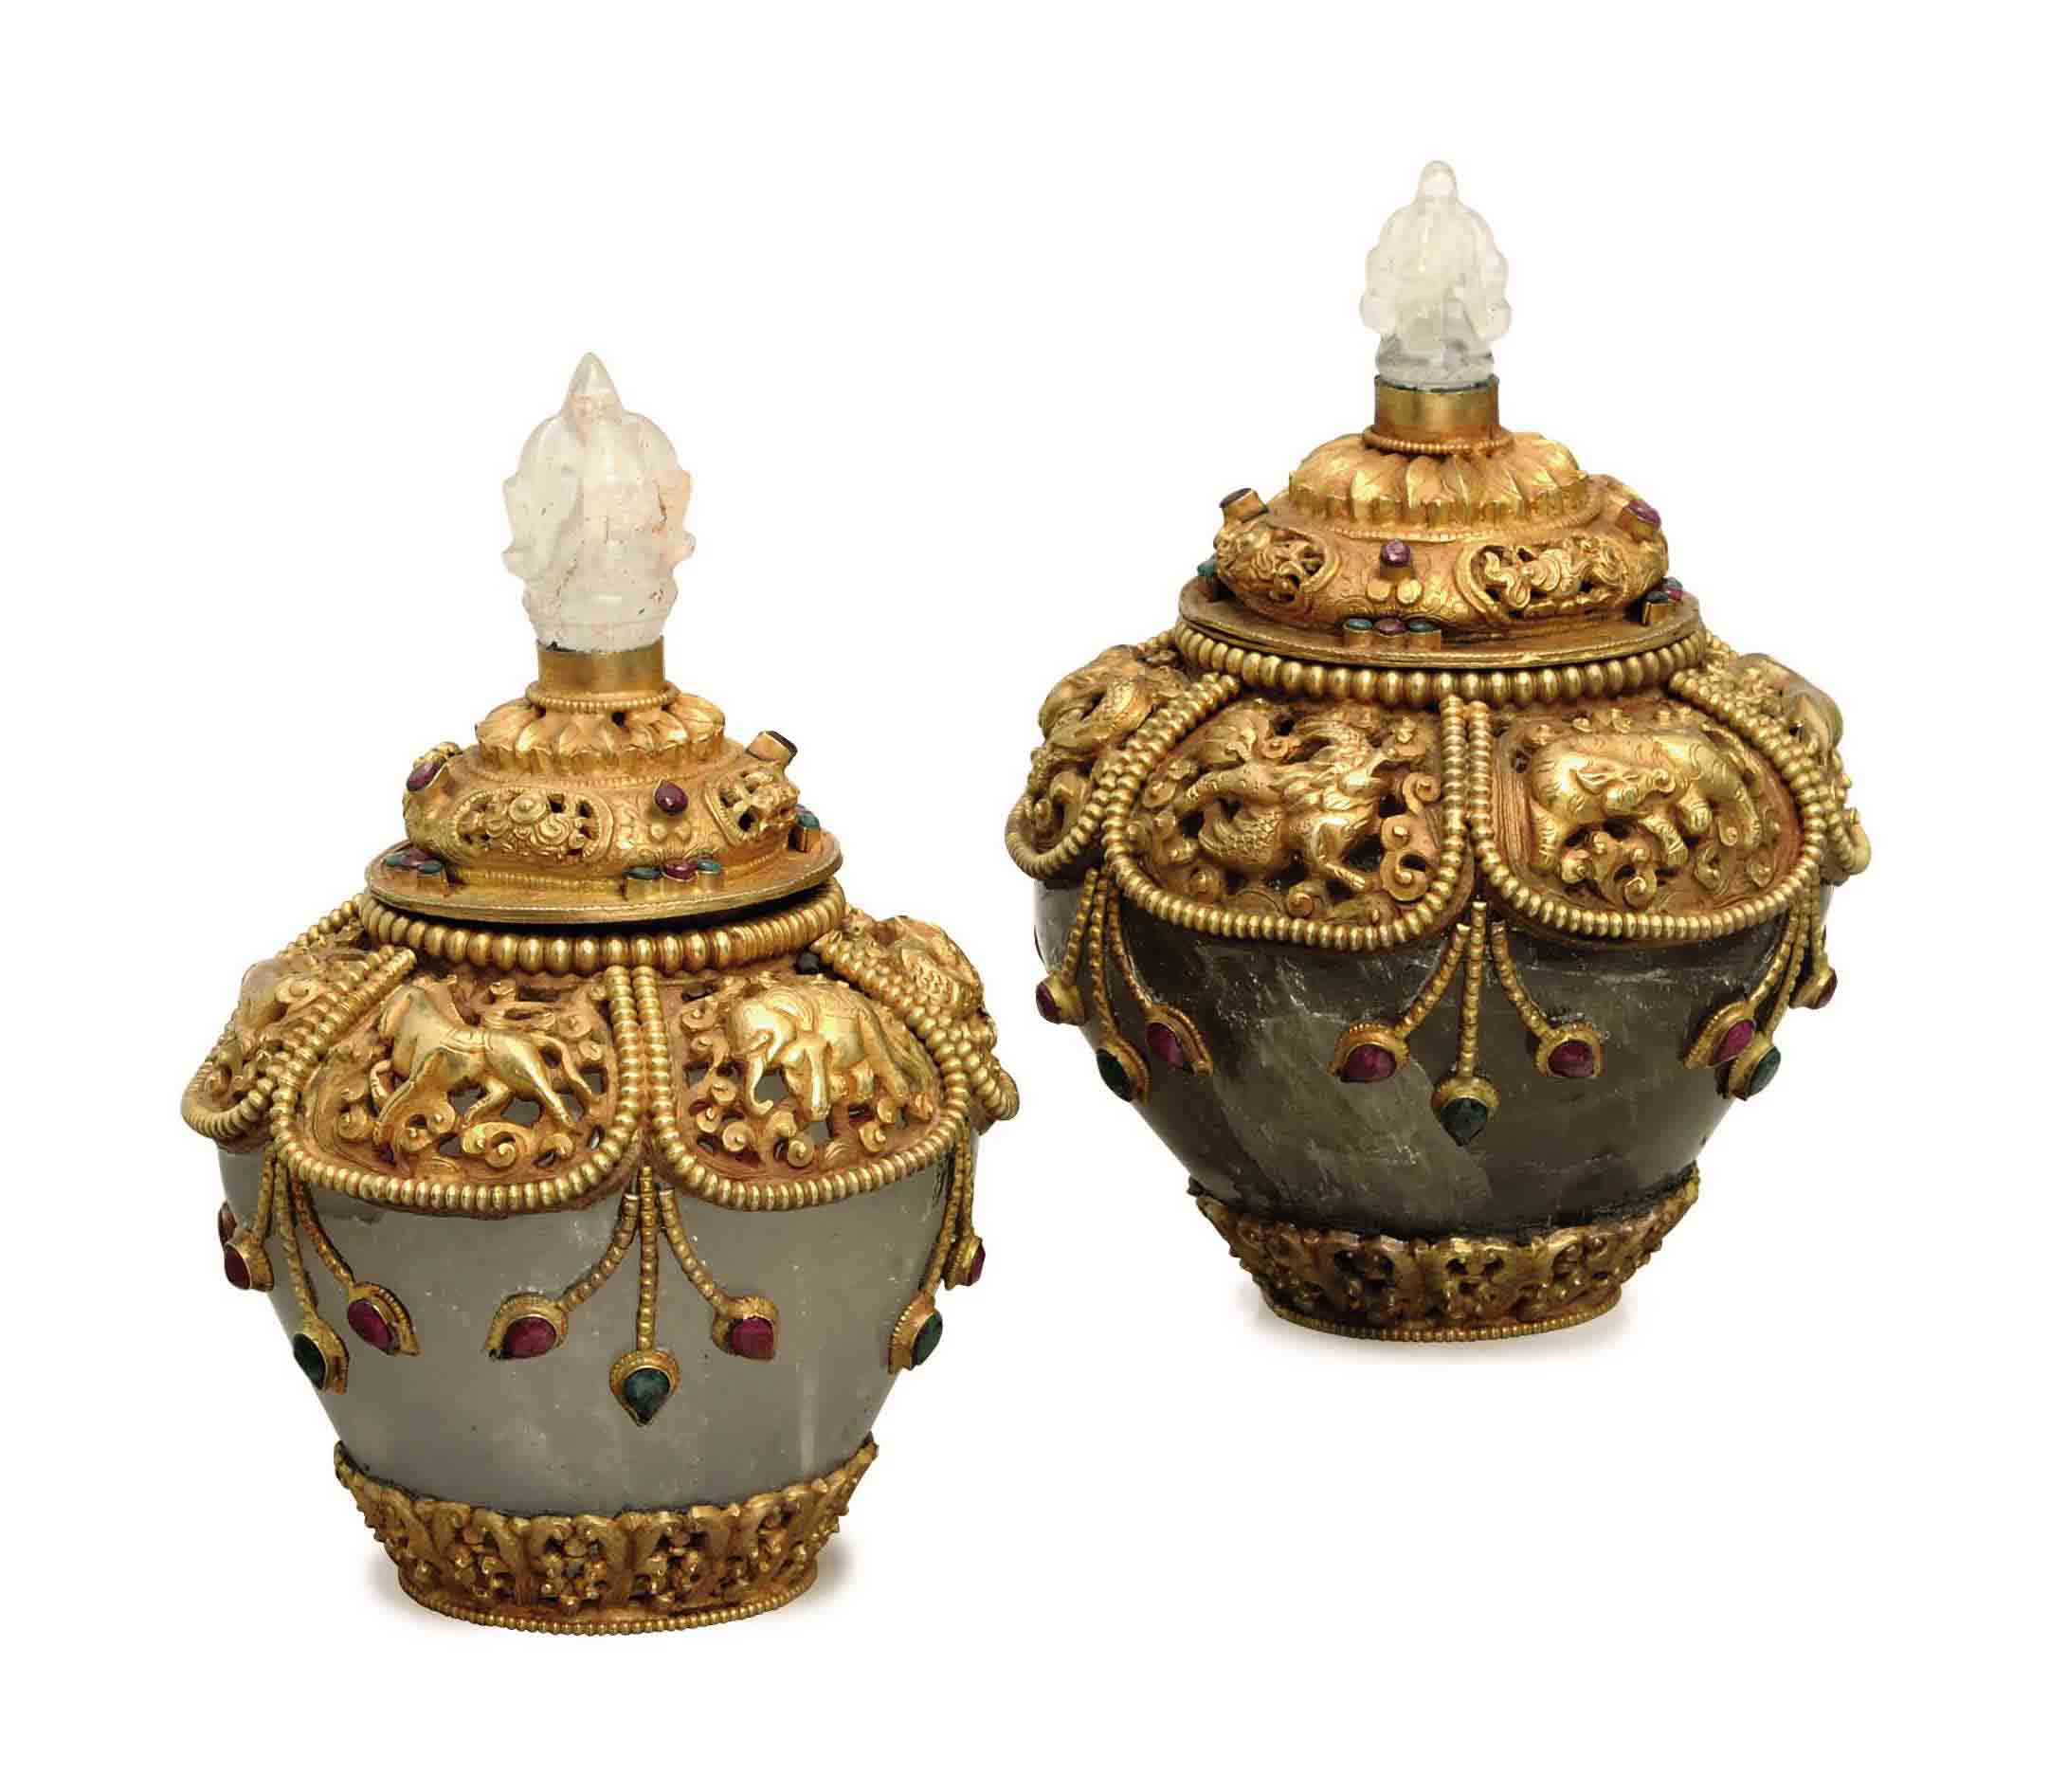 A PAIR OF GILT-METAL AND JEWEL